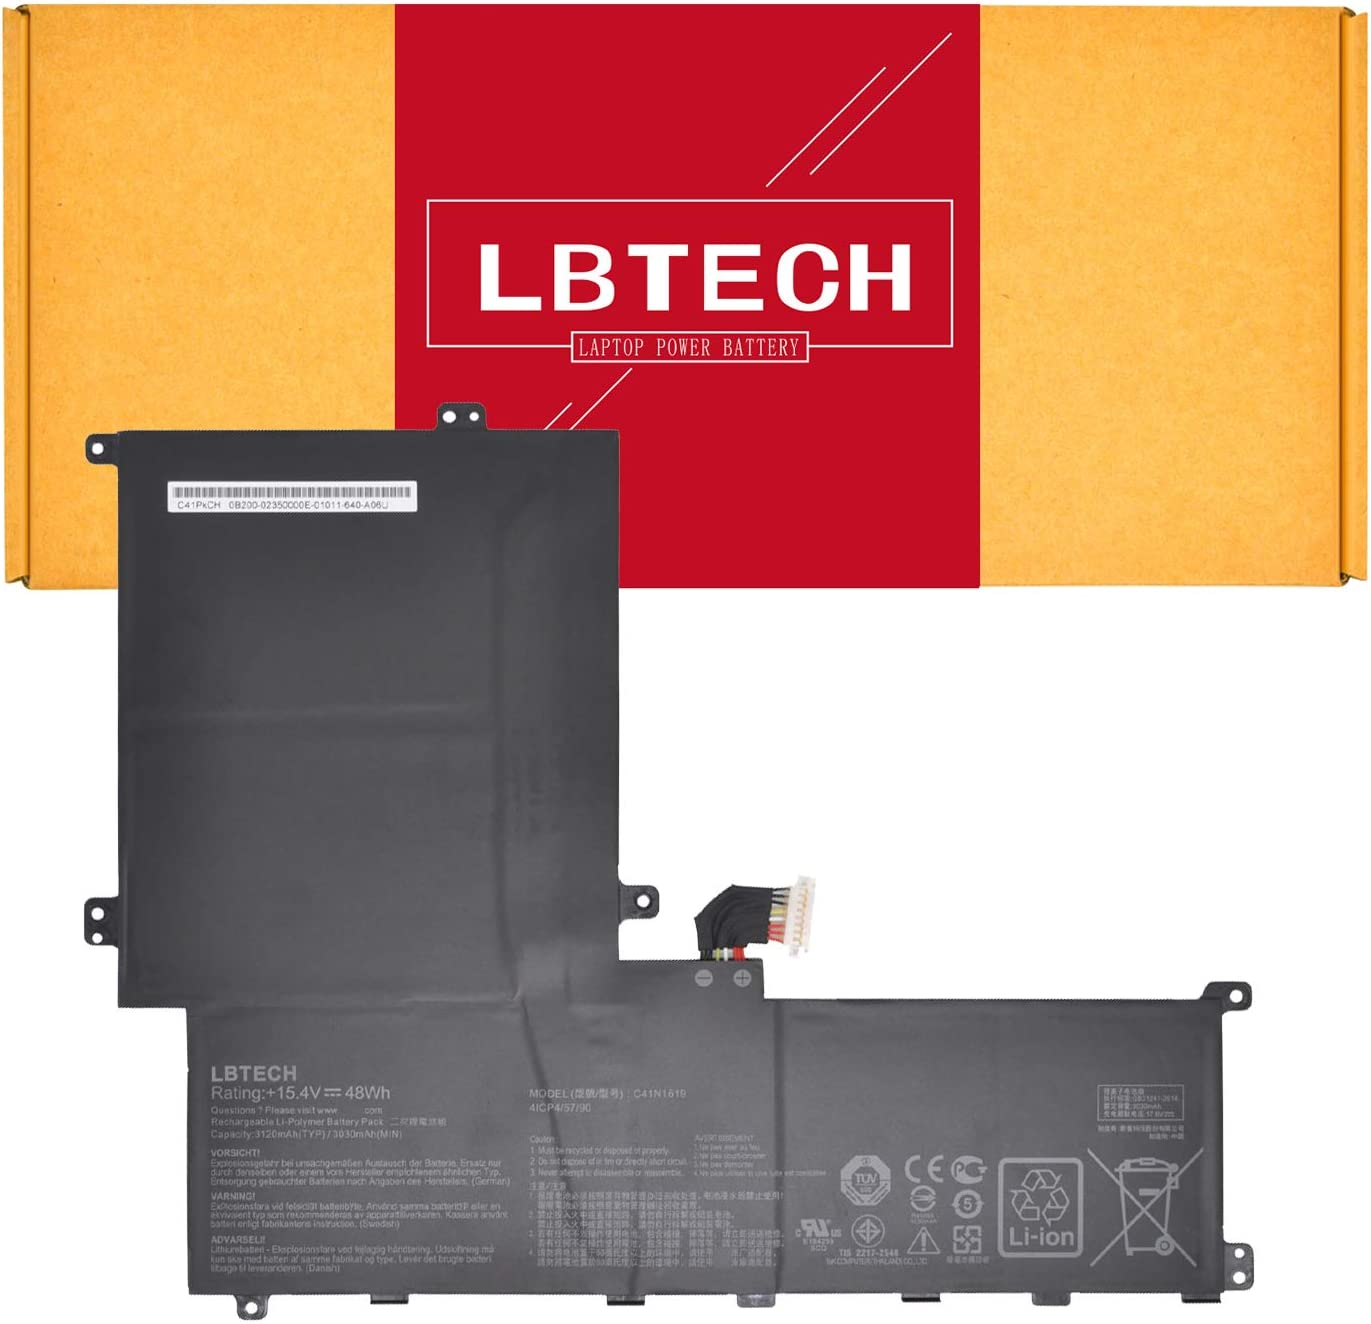 LBTECH C41N1619 Laptop Battery Replacement Max 40% OFF B9 B9440 Asus Pro Oakland Mall for